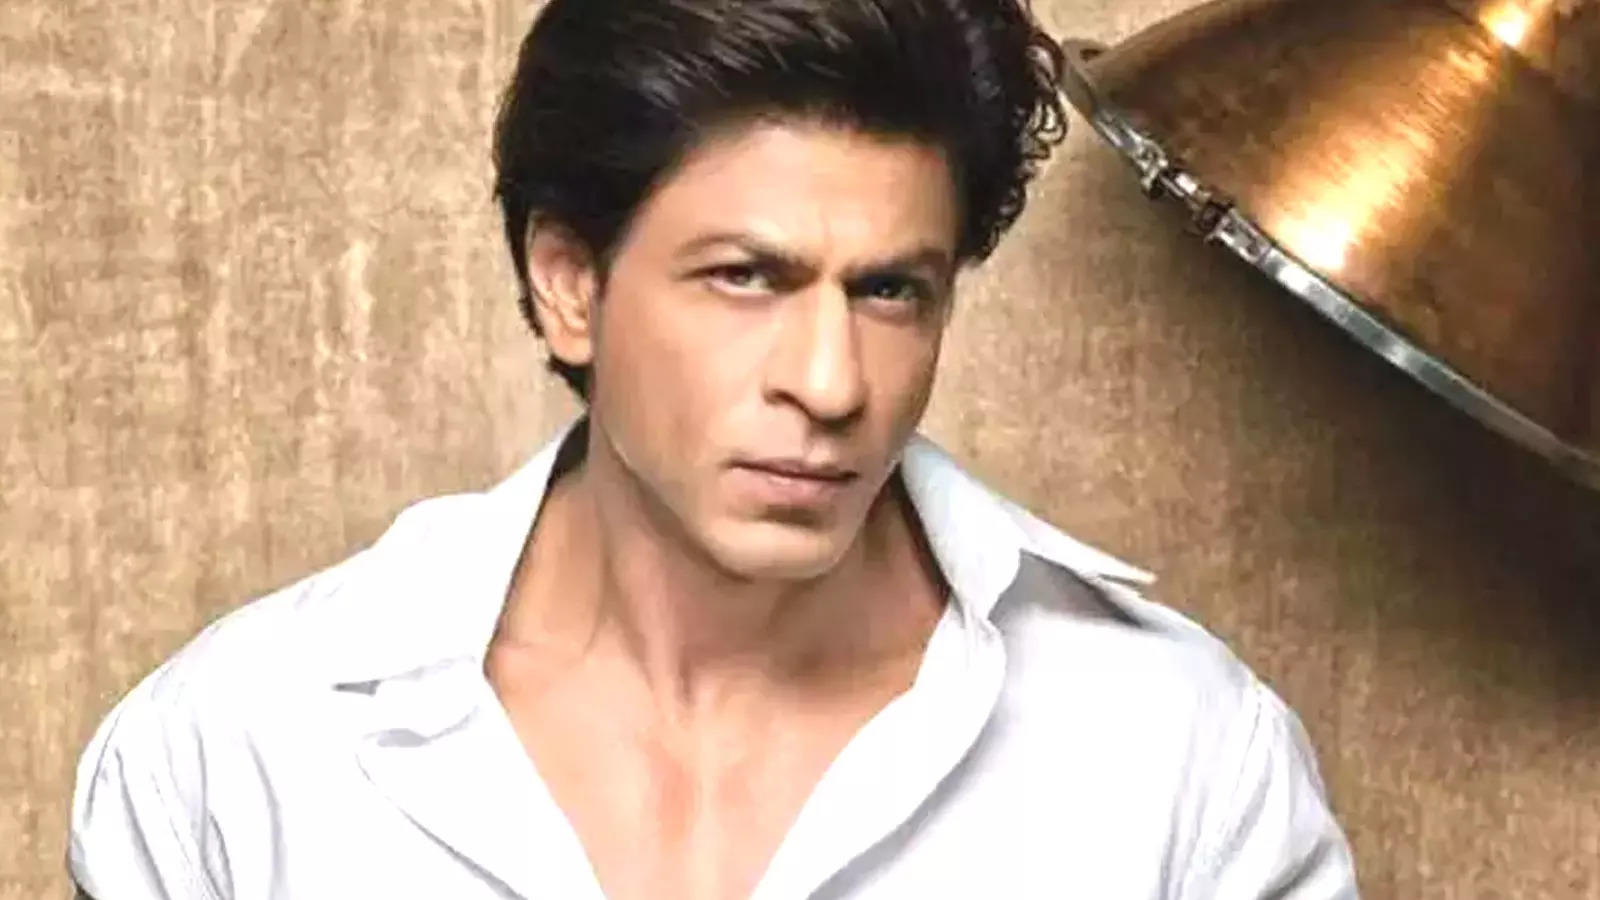 heres-how-to-describe-shah-rukh-khan-in-sign-language-actor-makes-it-to-isl-dictionary-launched-by-pm-modi